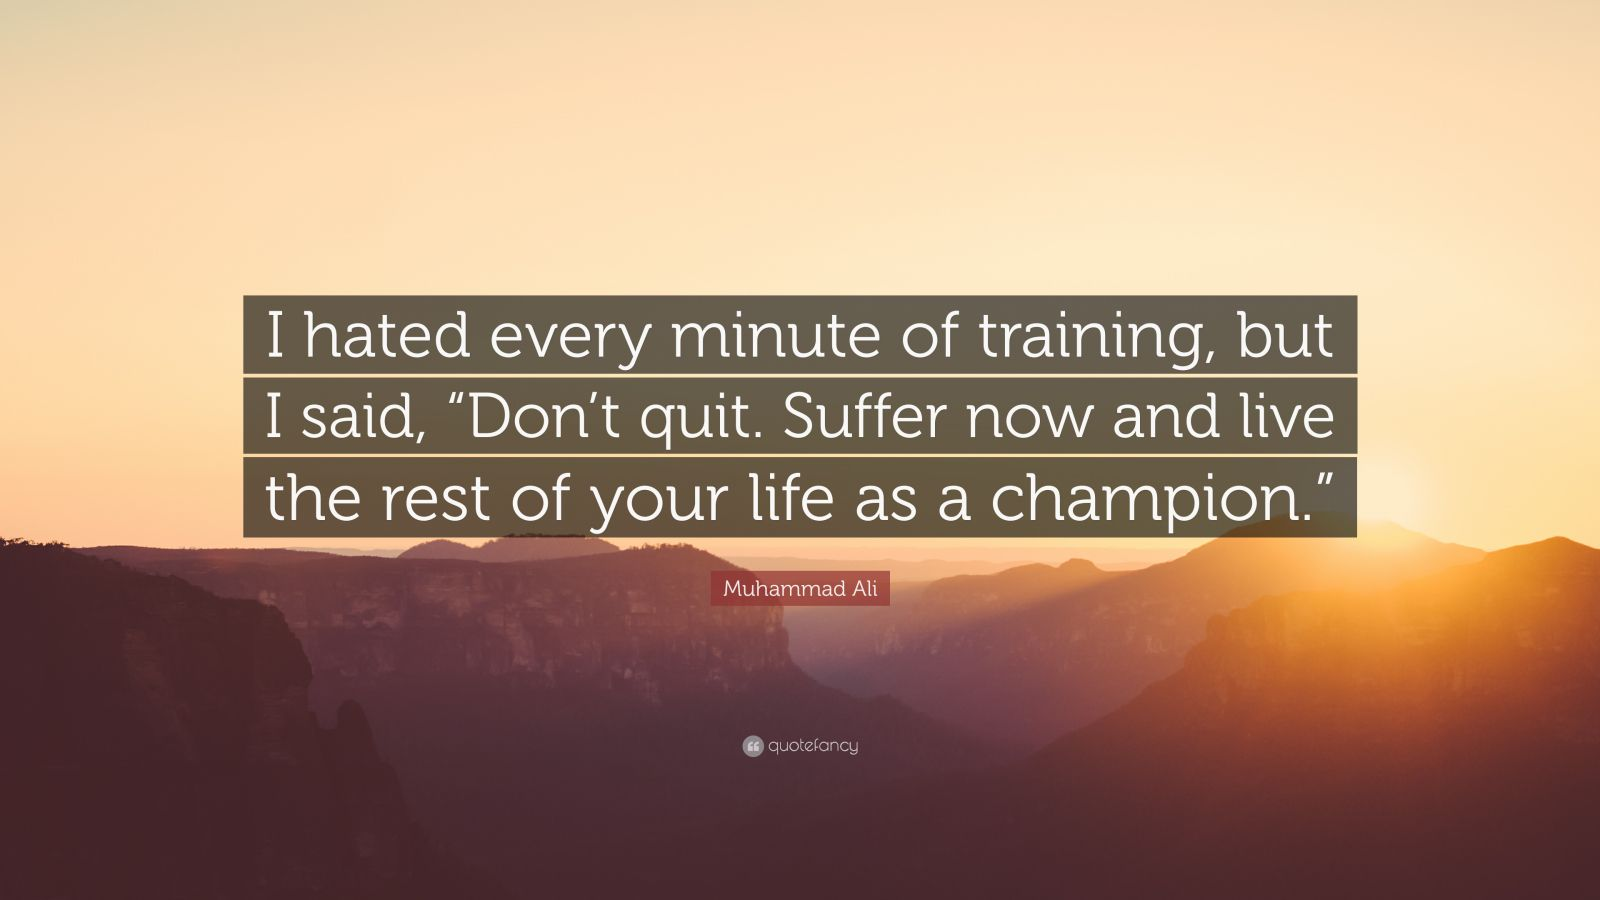 Muhammad Ali Quotes I Hated Every